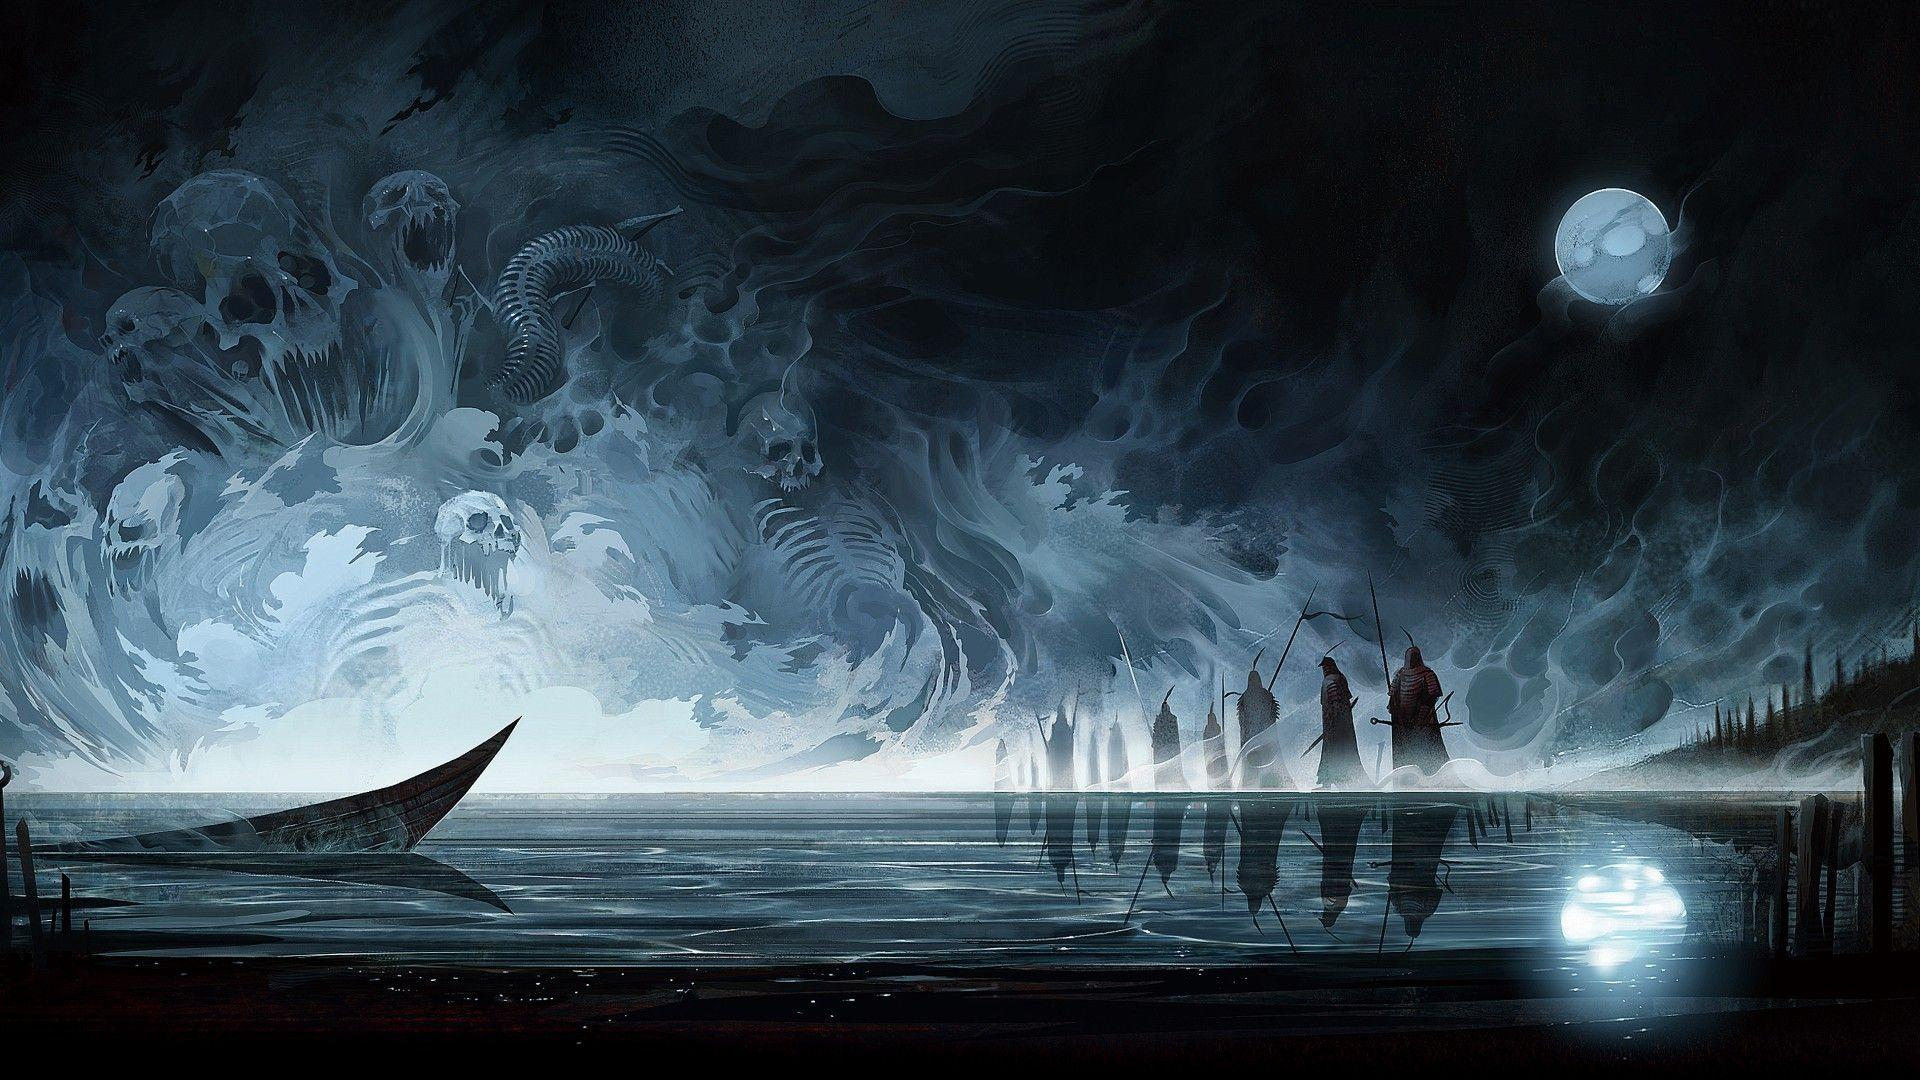 Dark Fantasy Wallpapers 1920x1080